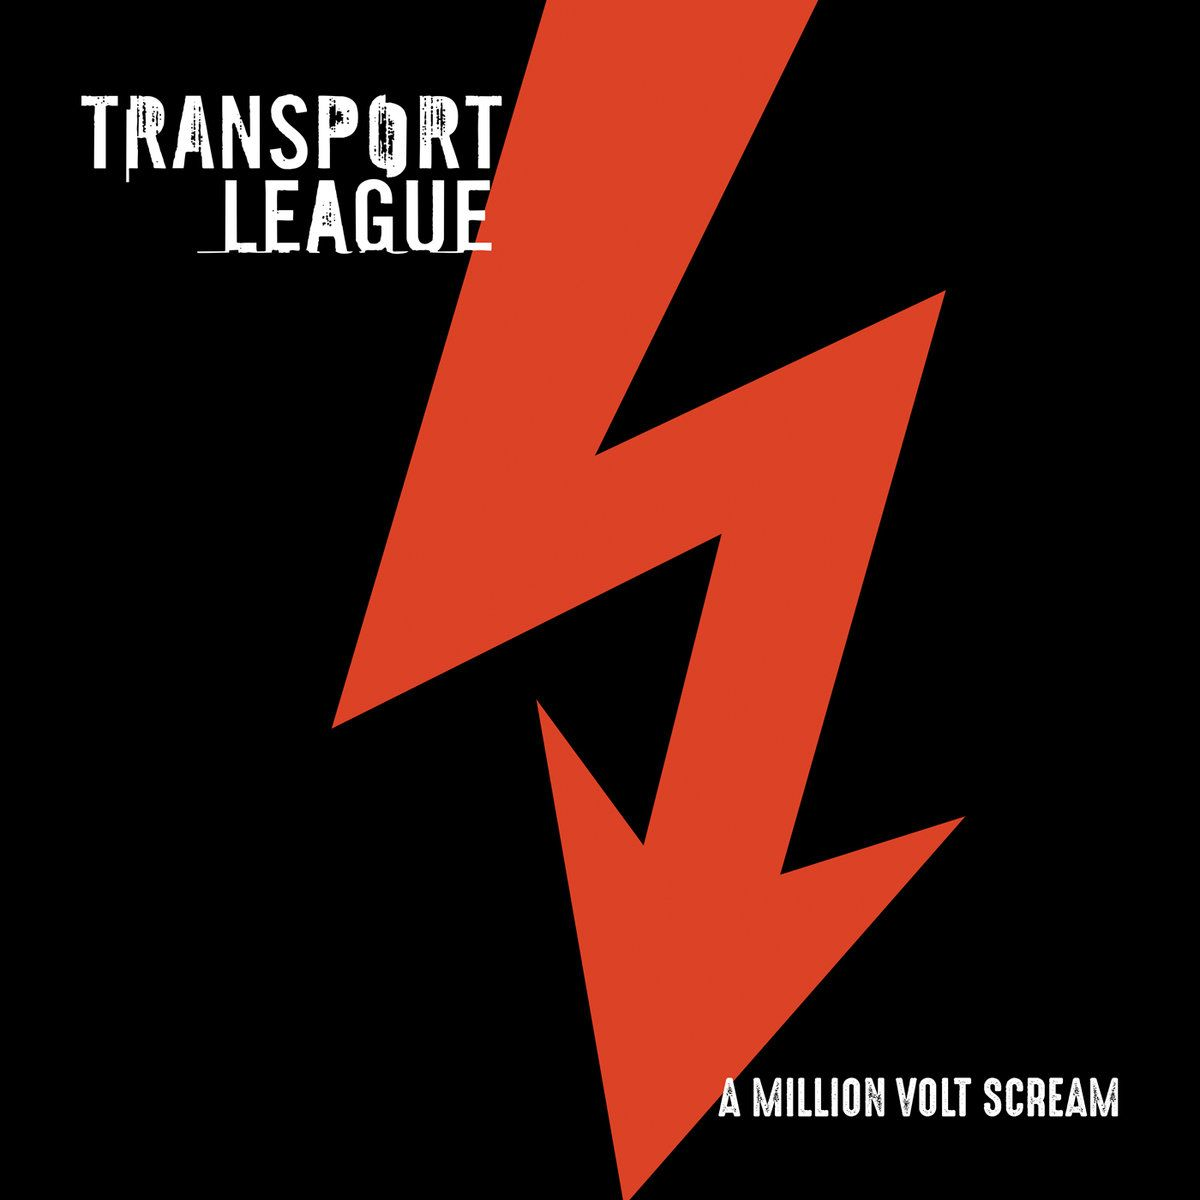 "FULL FORCE FRIDAY: September 6th Release #16🎧8th album from Partille, Swedish Sludge/Doom outfit🔥TRANSPORT LEAGUE - A Million Volt Scream🇸🇪🔥 BC STREAM➡️""1200 Goddamned"" https://t.co/yJHmvnhRh7 @MightyMusicDK #transportleague #amillionvoltscream #sludgedoom #FFFSep6 #KMaN https://t.co/rr6PM7C2VR"